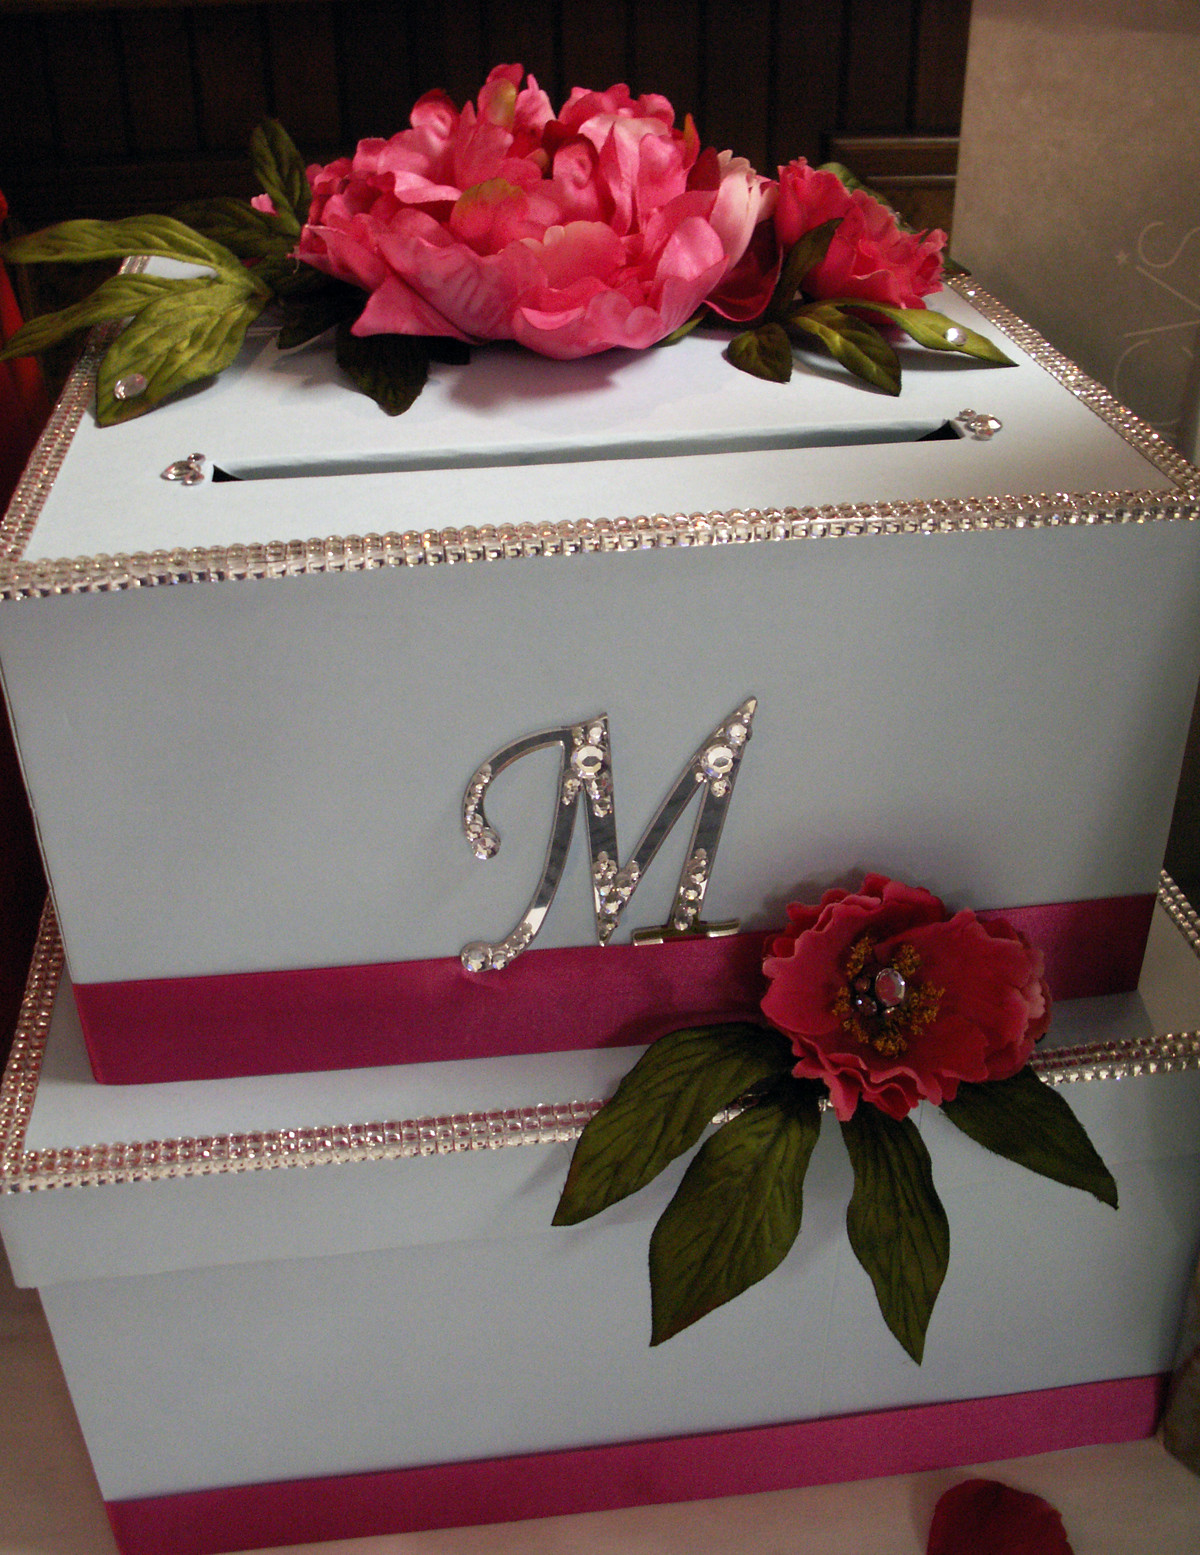 Best ideas about DIY Wedding Card Box Instructions . Save or Pin DIY Wedding Card Box Project Now.